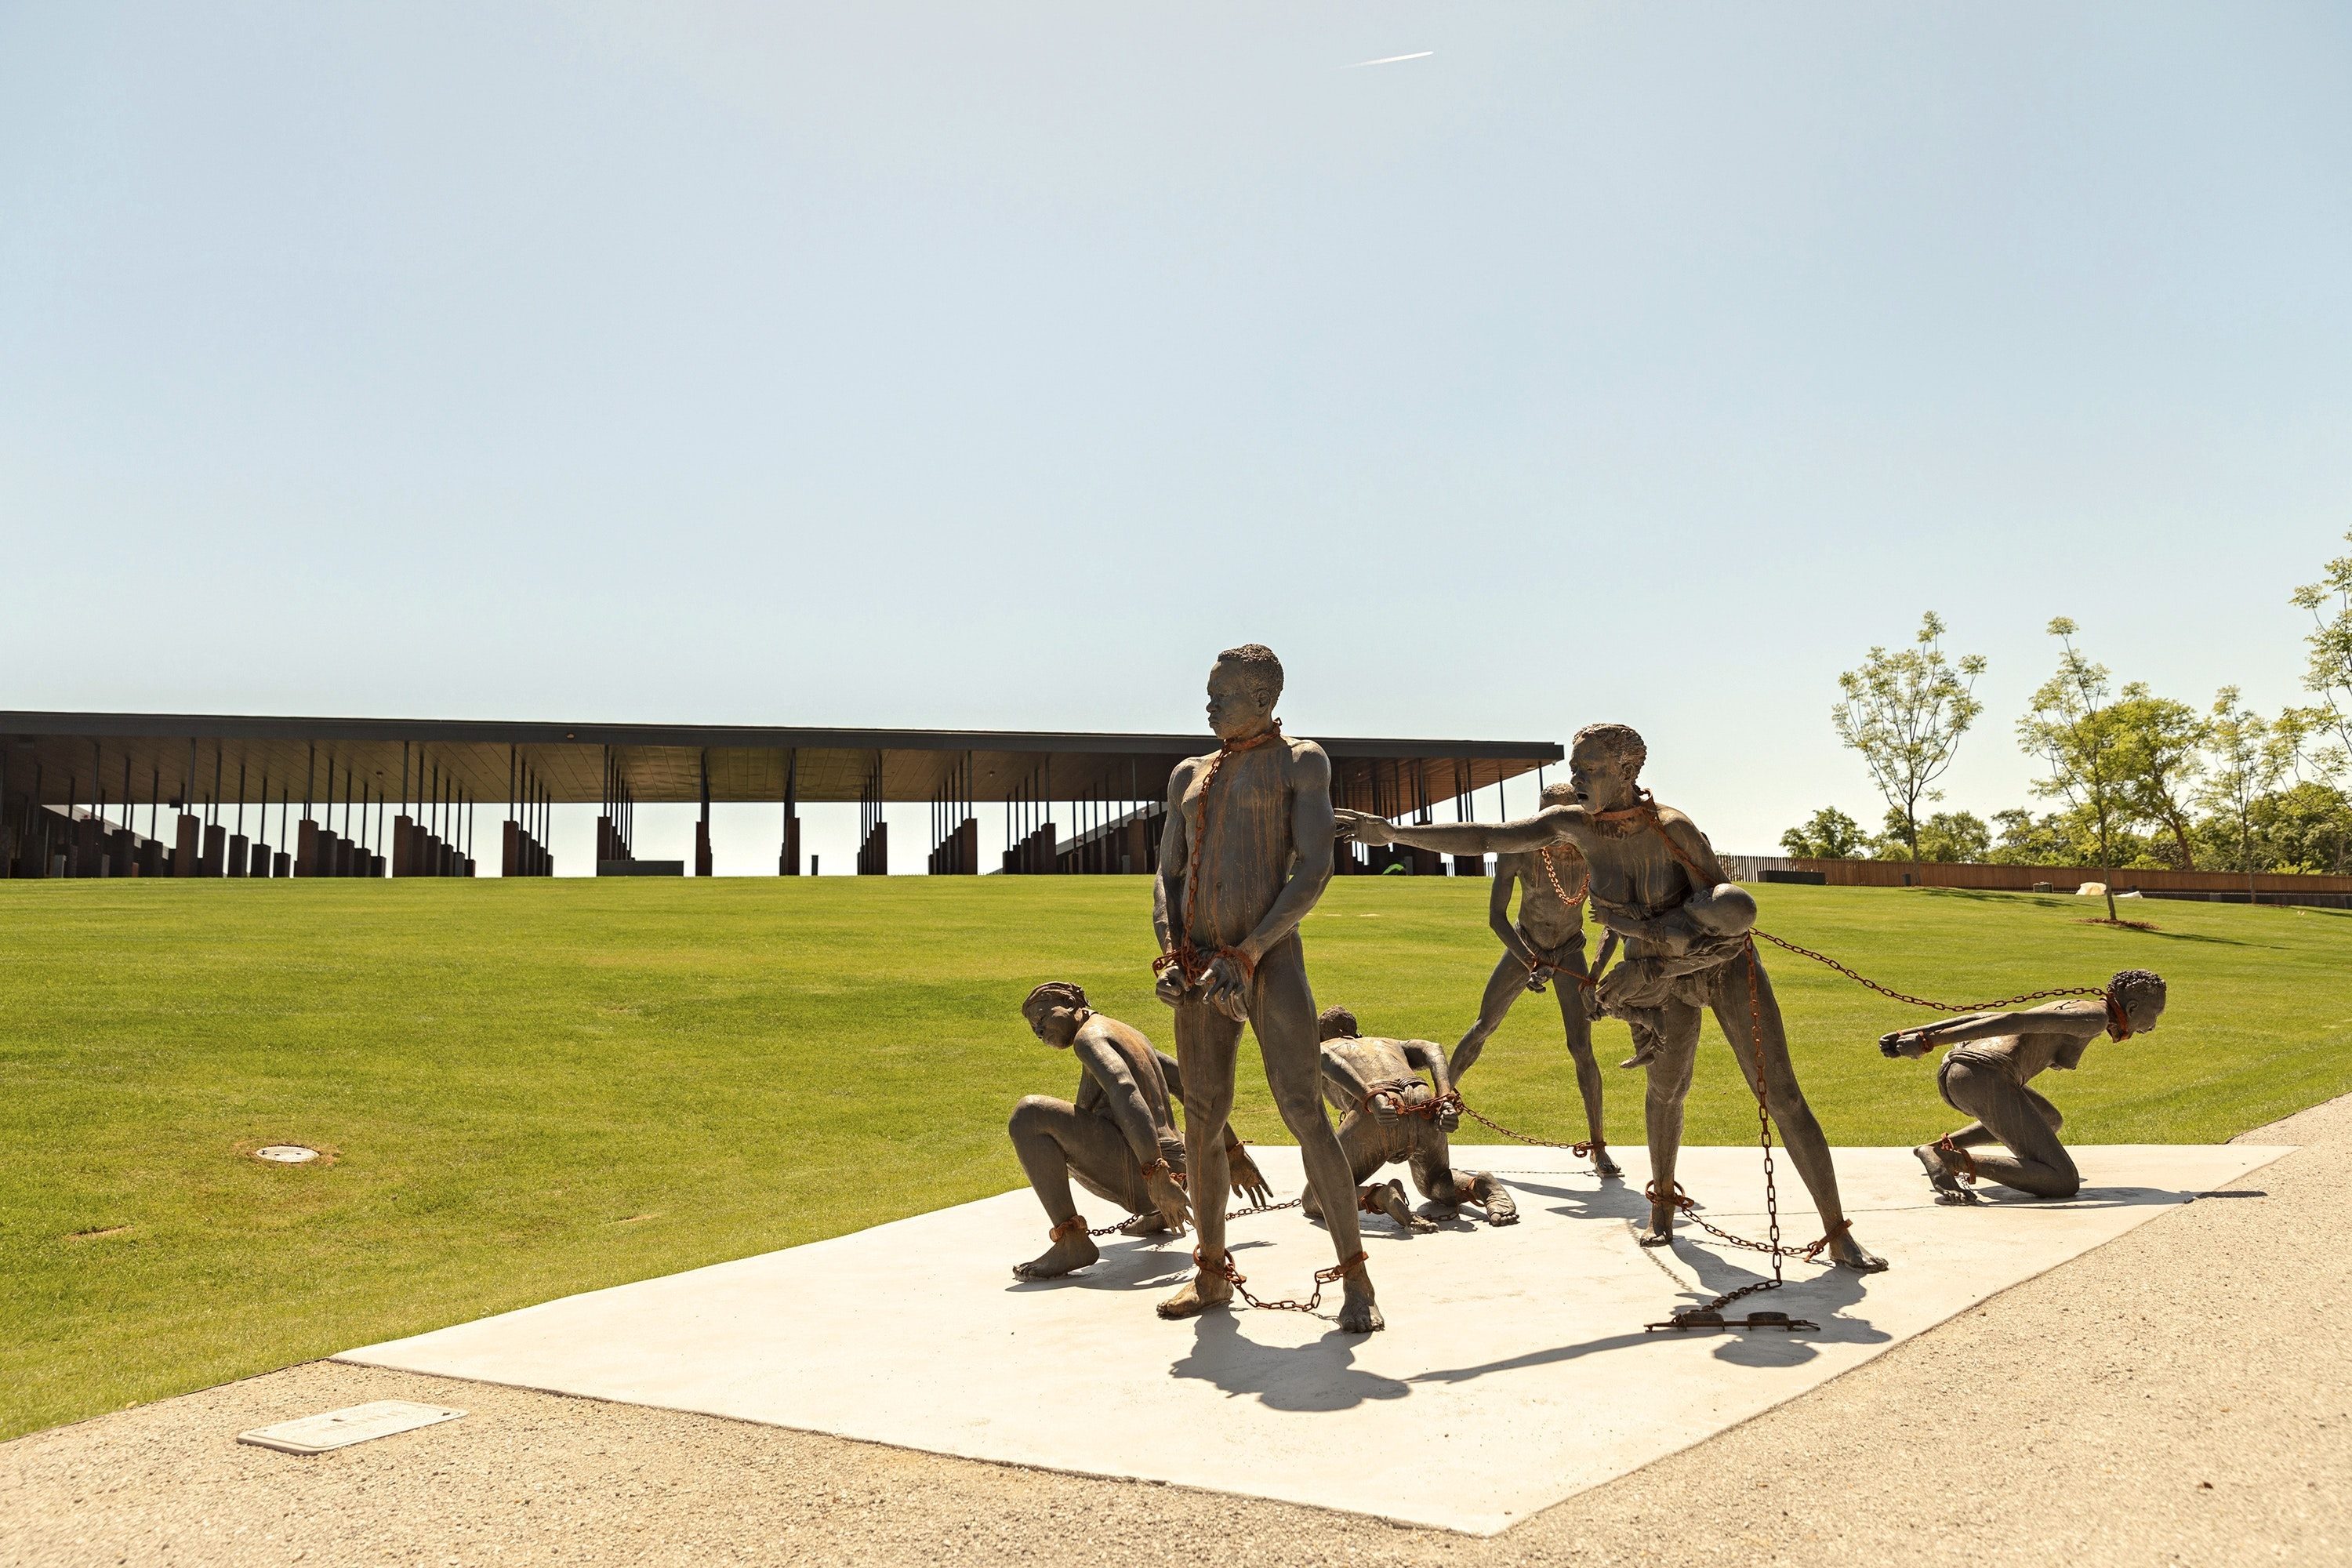 Seven sculpted figures by Ghanaian artist Kwame Akoto-Bamfo confront visitors at the memorial entrance.